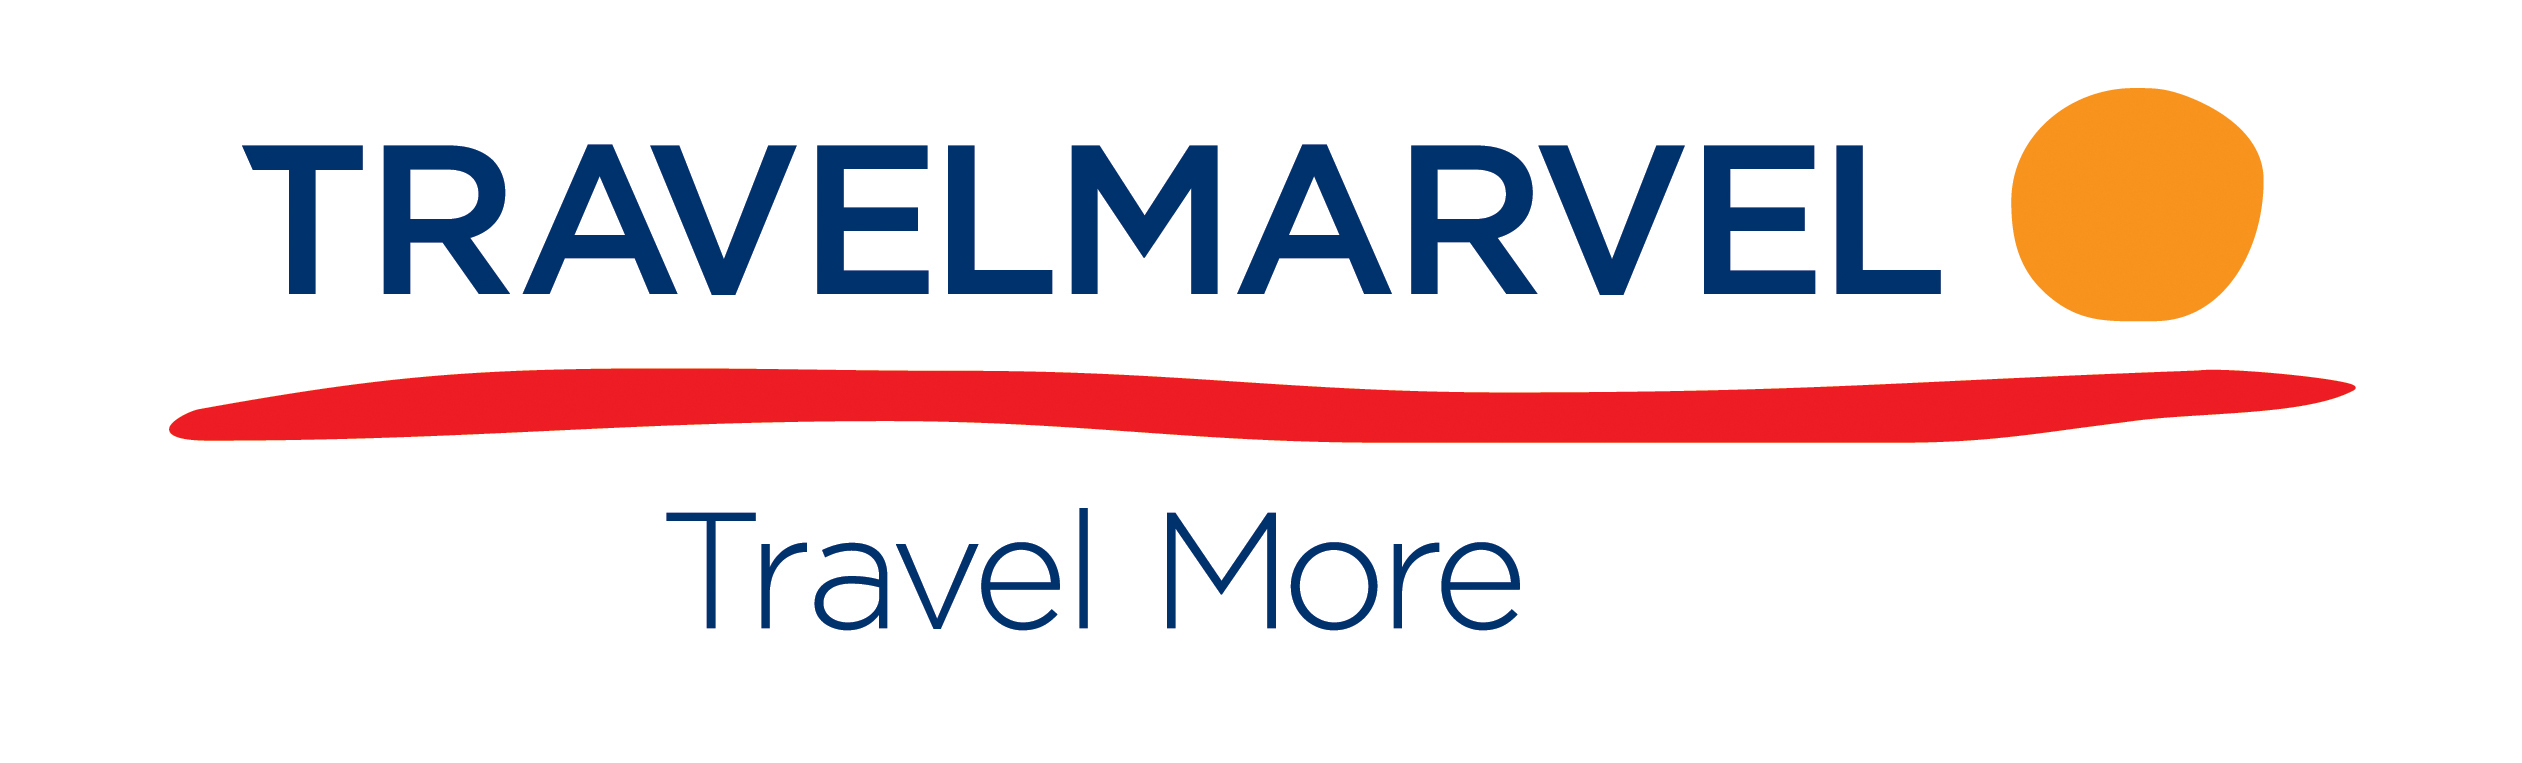 TRAVELMARVEL LOGO CMYK (WITH LINE)_Revised